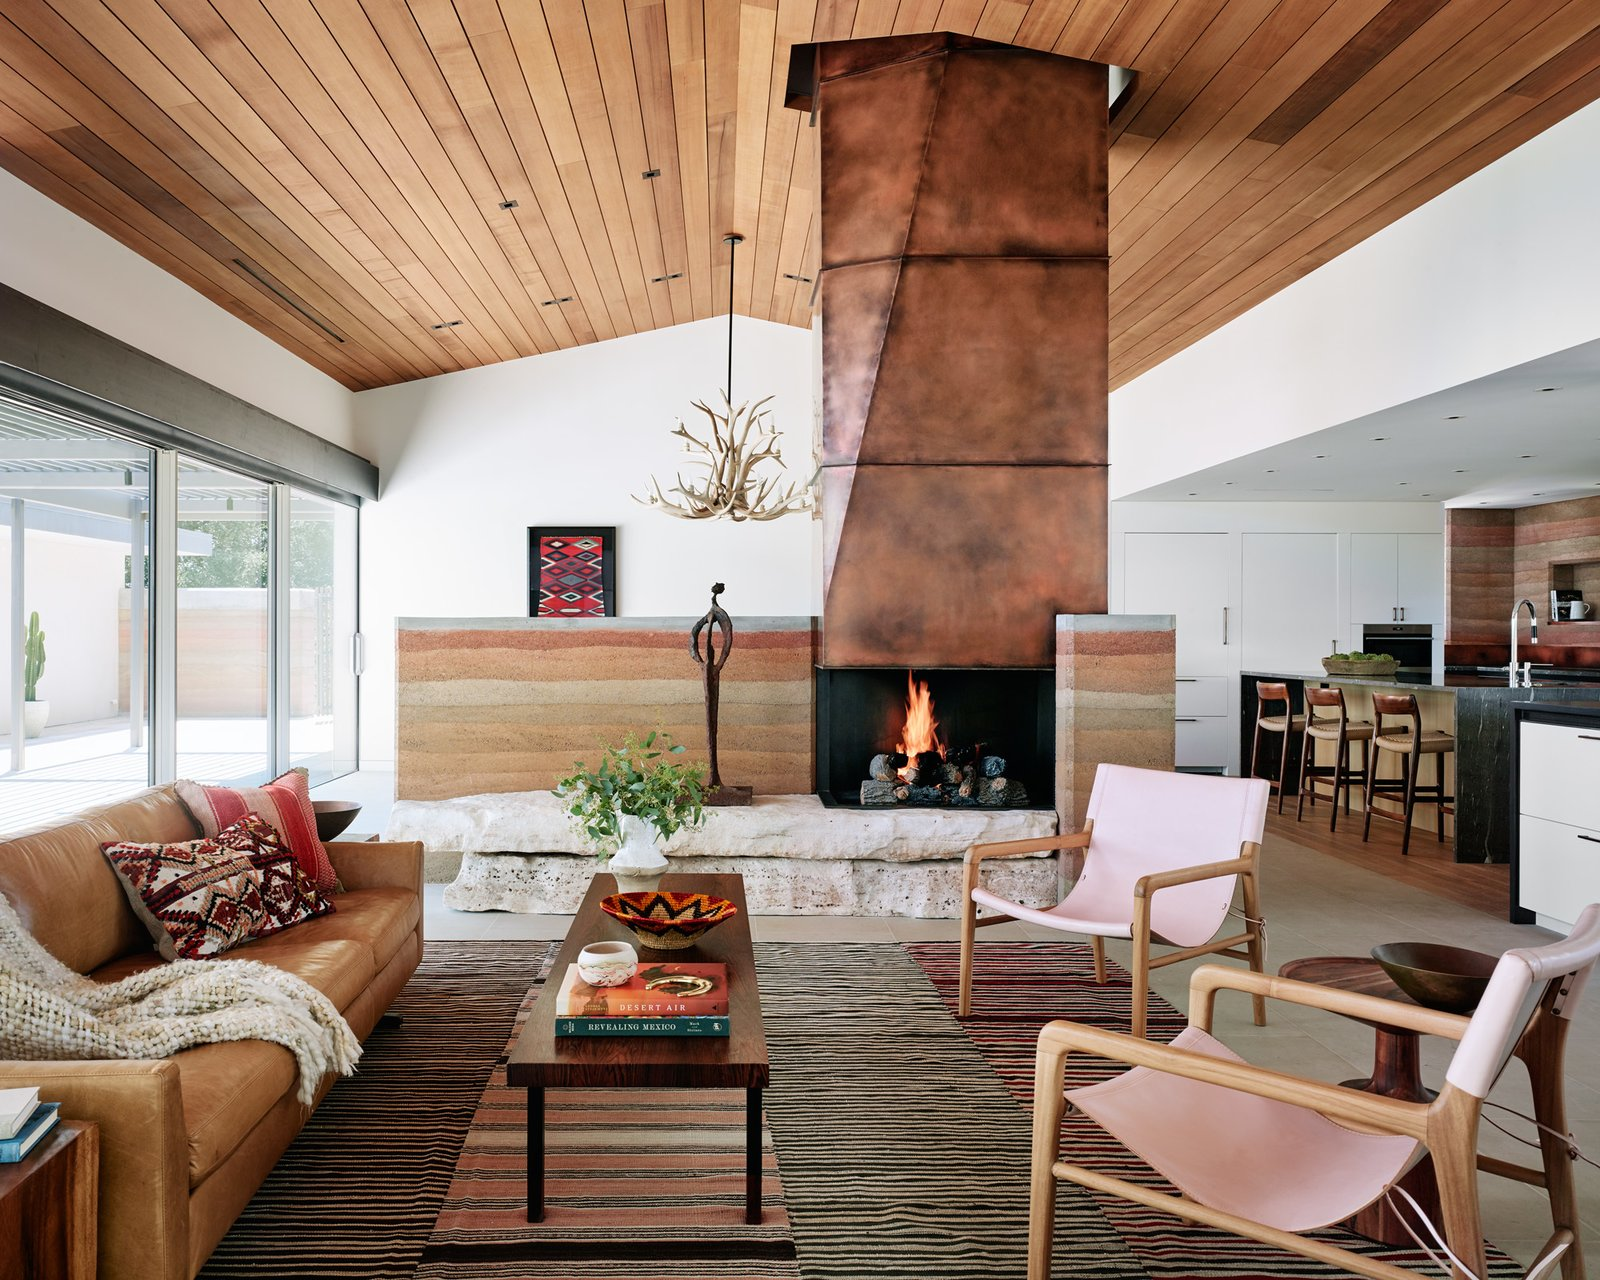 Jobe Corral Architects River Ranch house living room with fireplace.